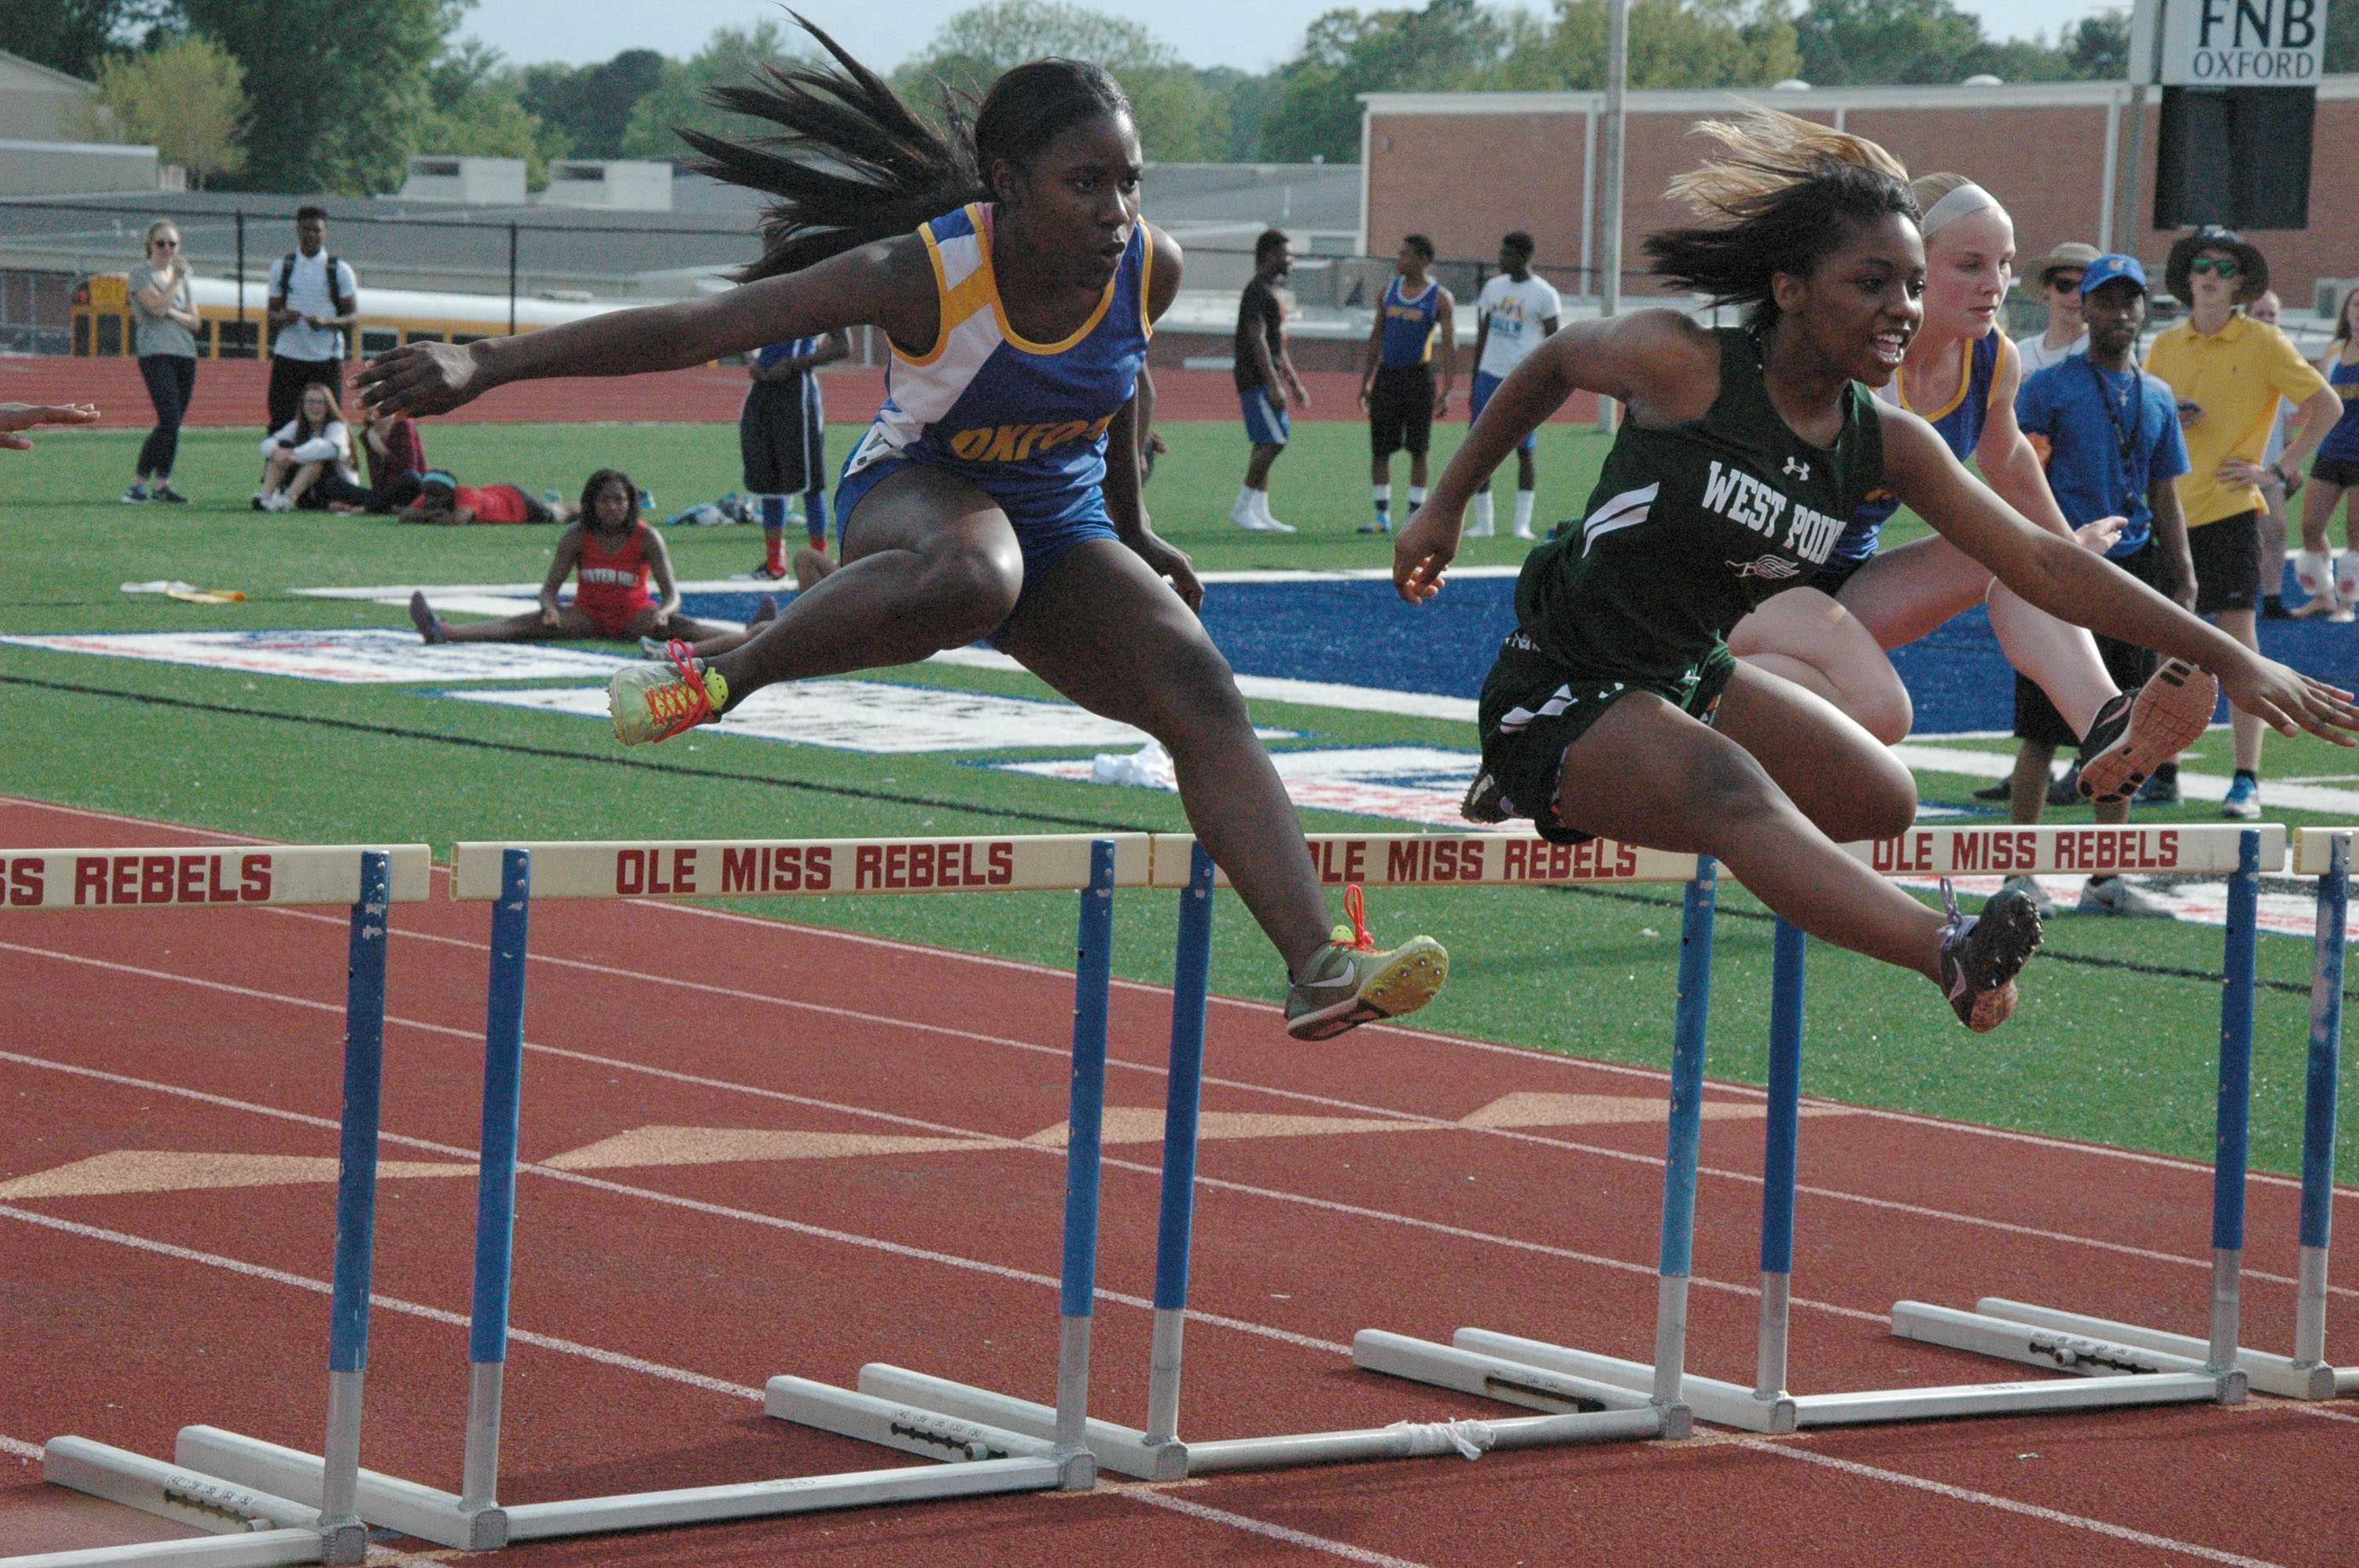 Rajah Ramsey and Emily Hankins run the 100 meter hurdles. Ramsey came in 2nd place with Hayward following with 3rd.